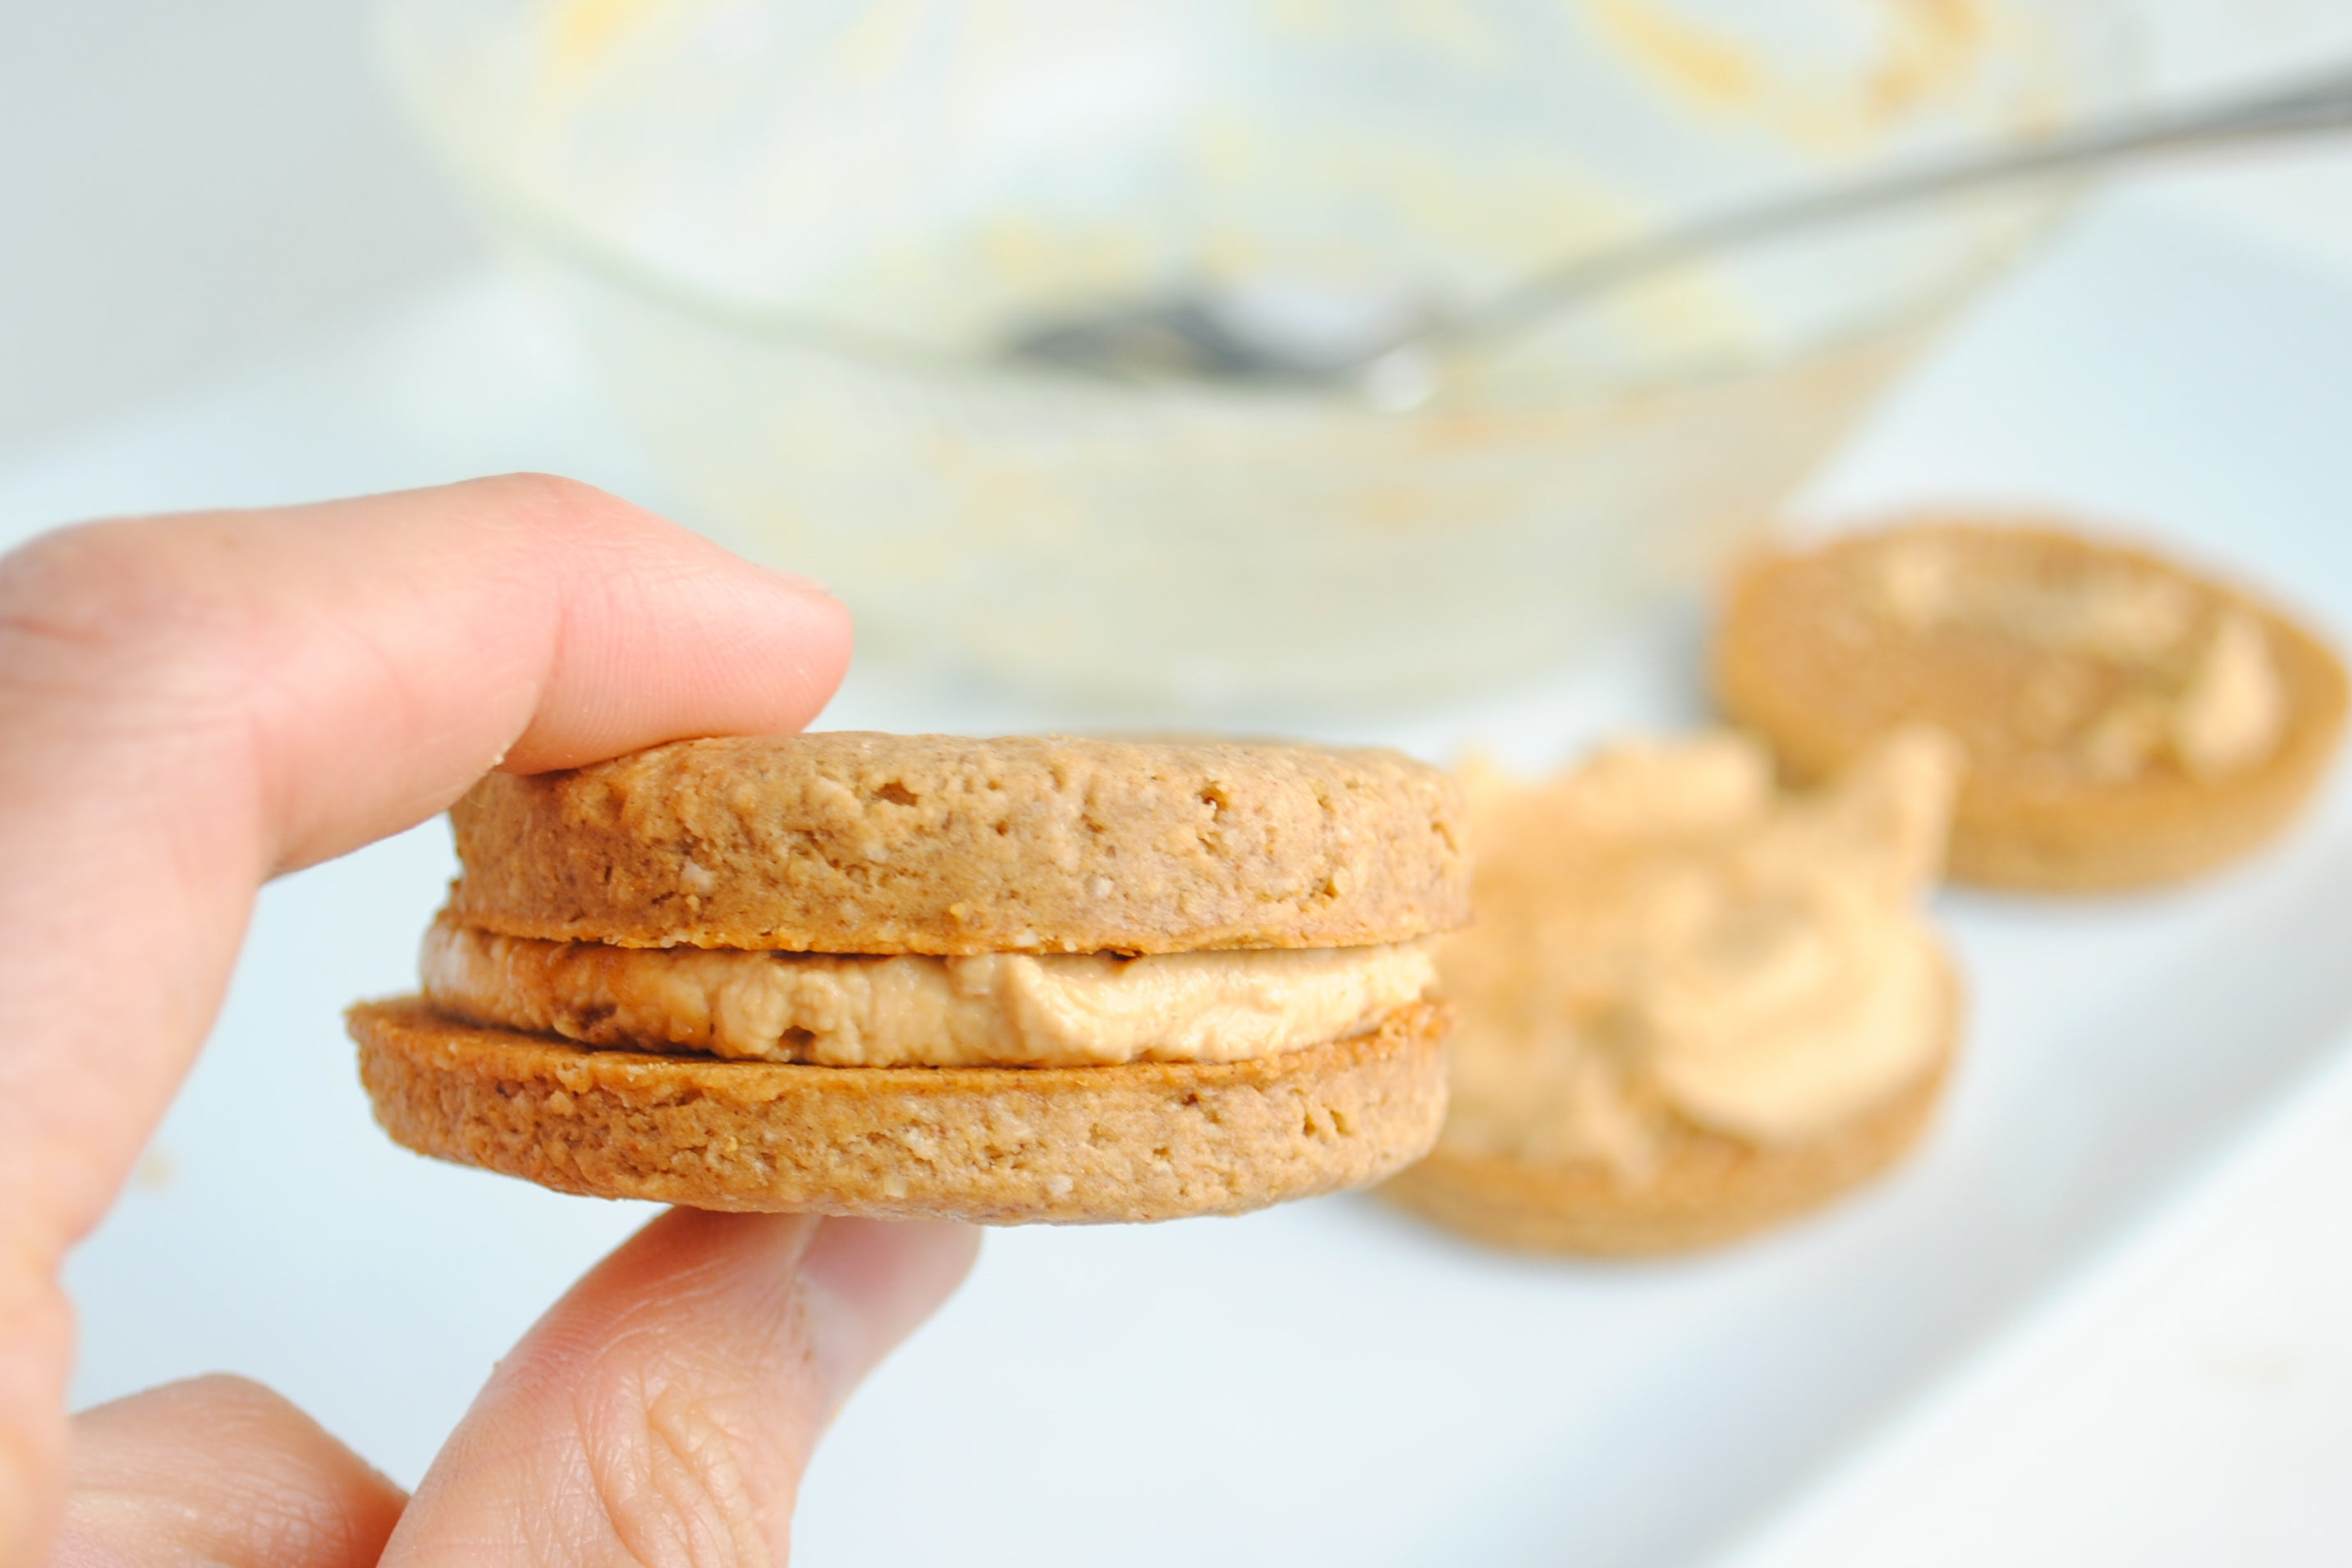 Double Peanut Butter Sandwich Cookies - Gently press another cookie on top of each